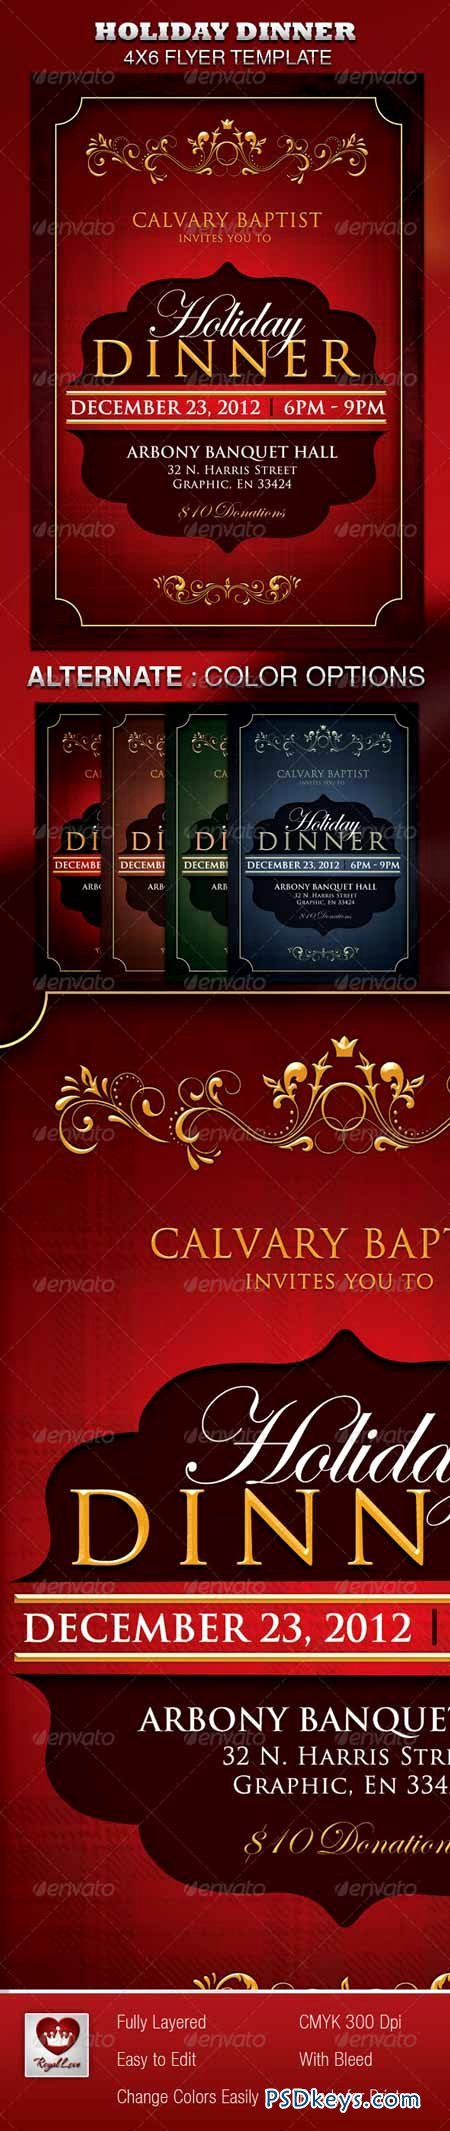 4x6 Flyer Template Luxury Holiday Dinner Church Flyer Free Download